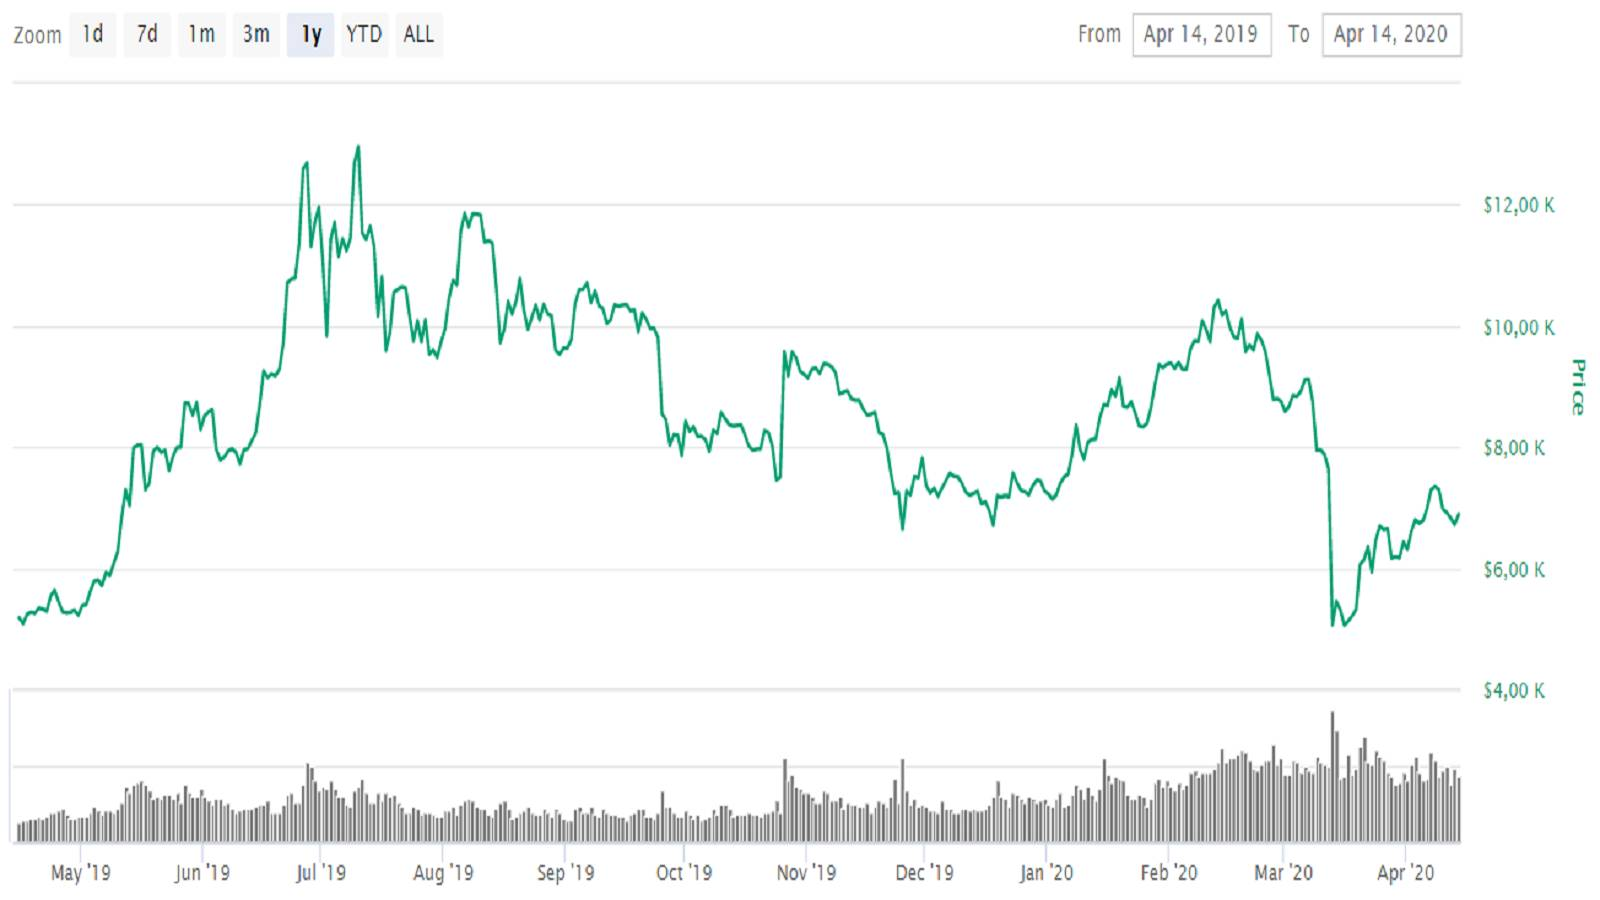 bitcoin price over the year